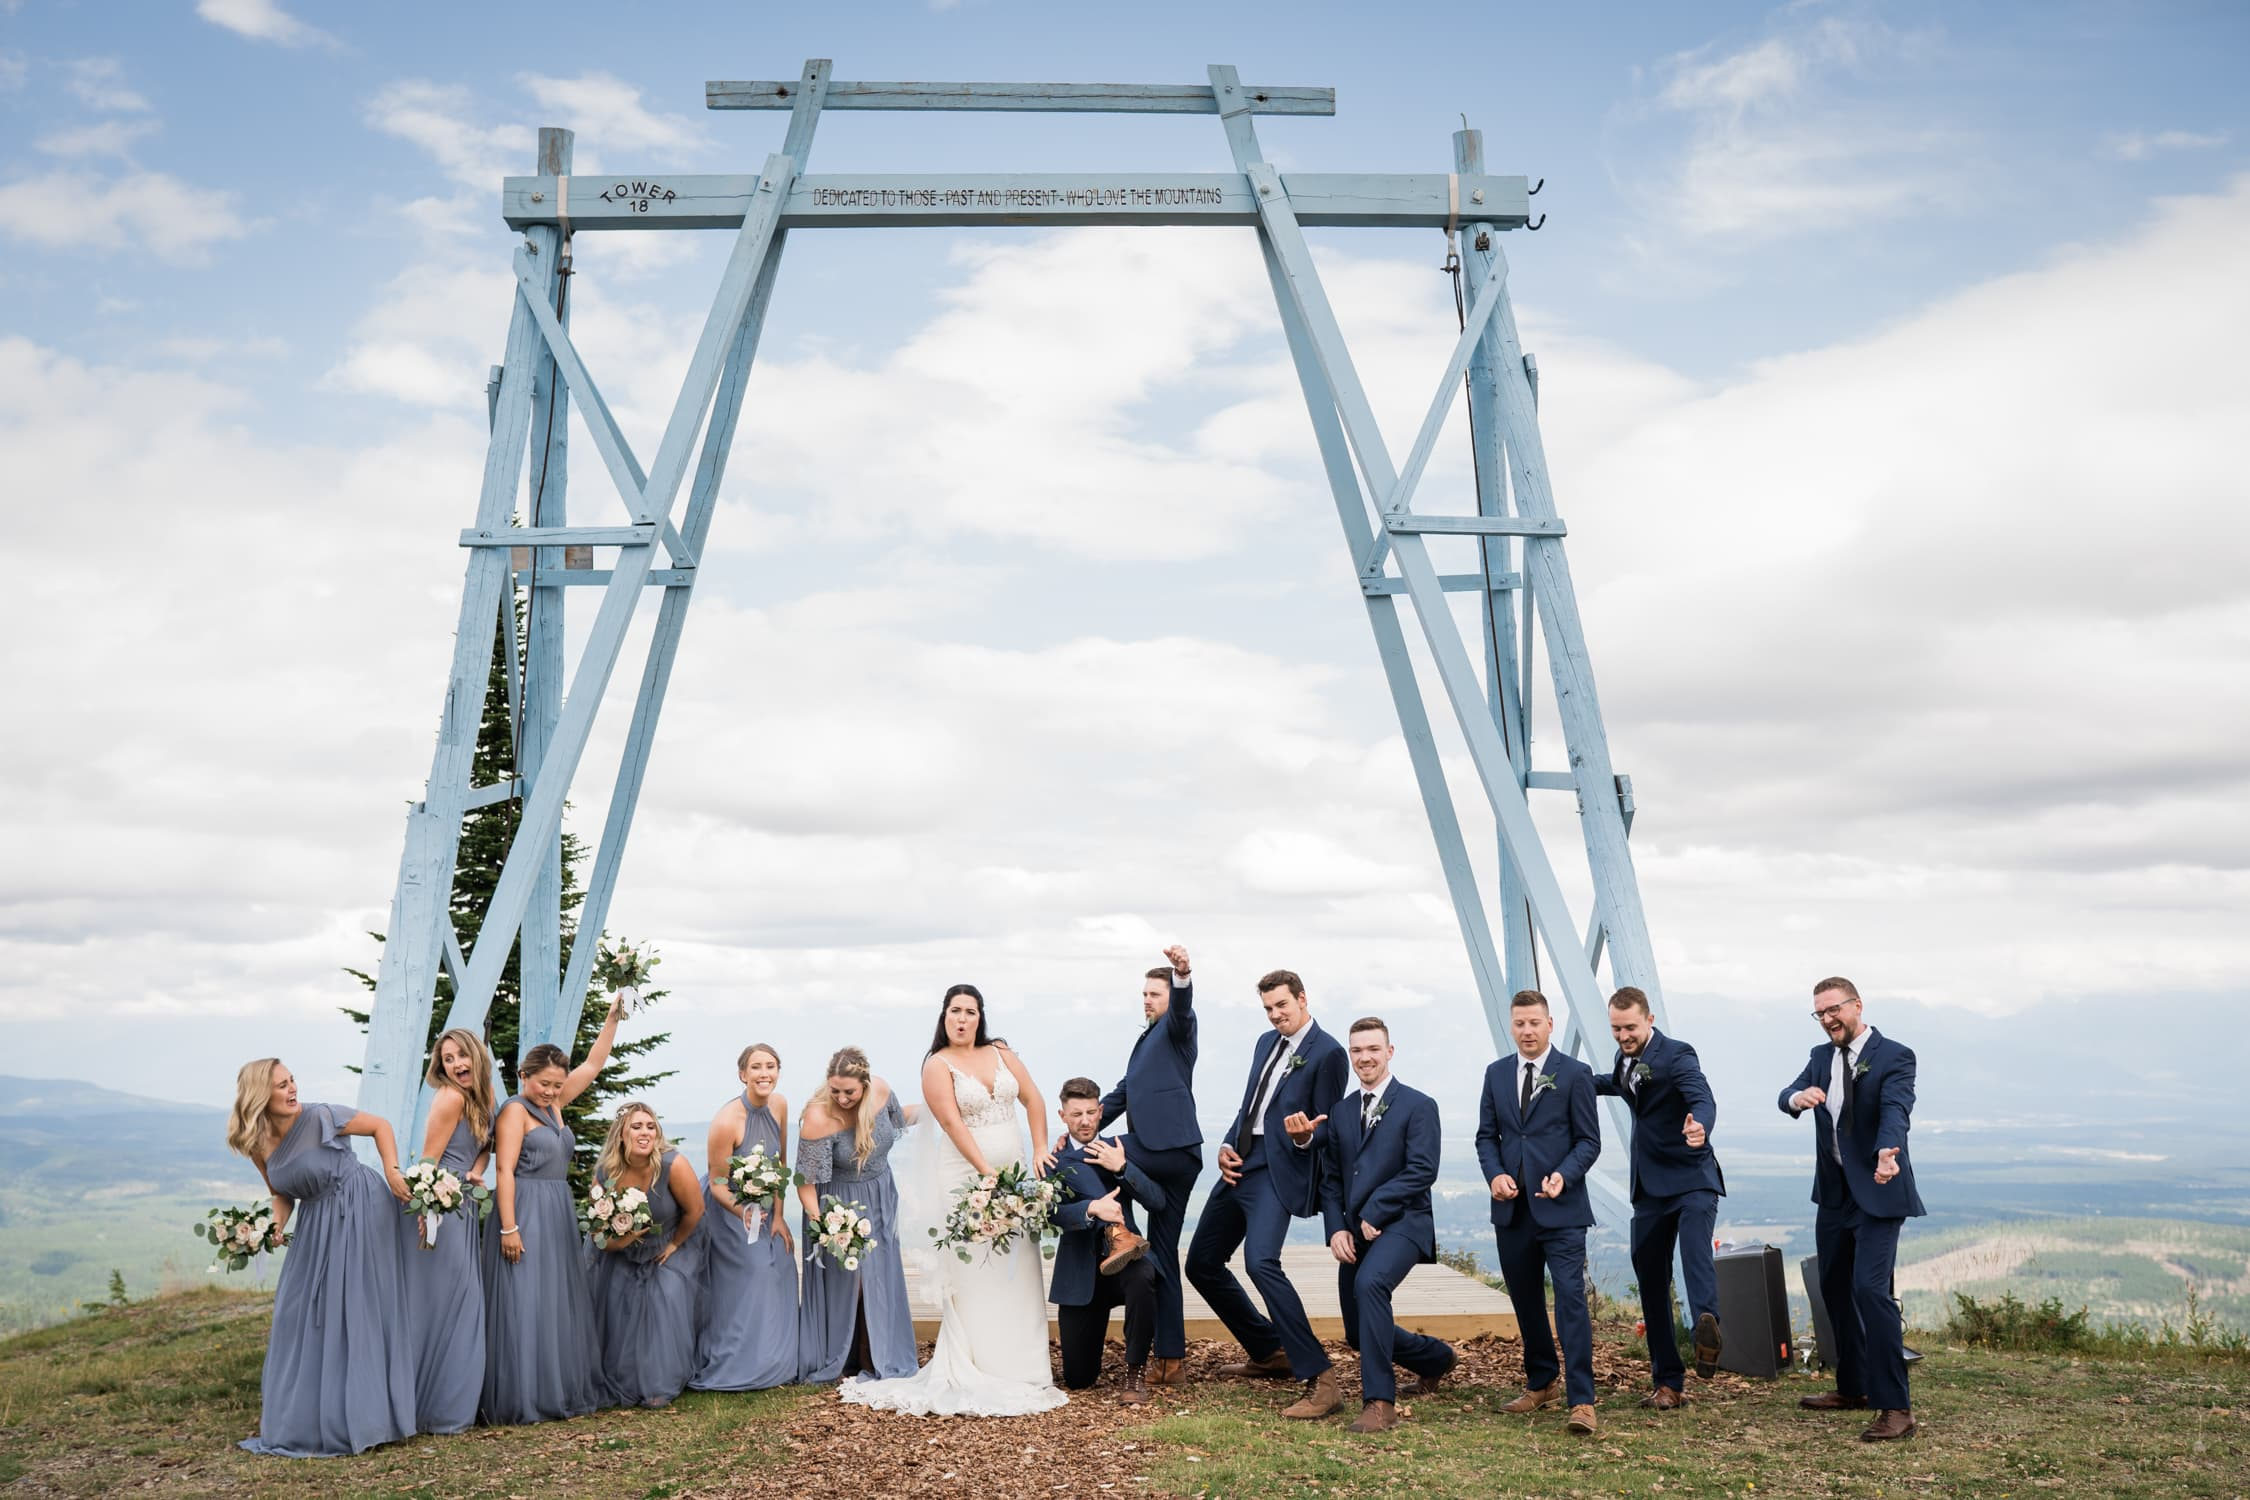 Bridal party celebrates after the ceremony at Kimberley Alpine Resort